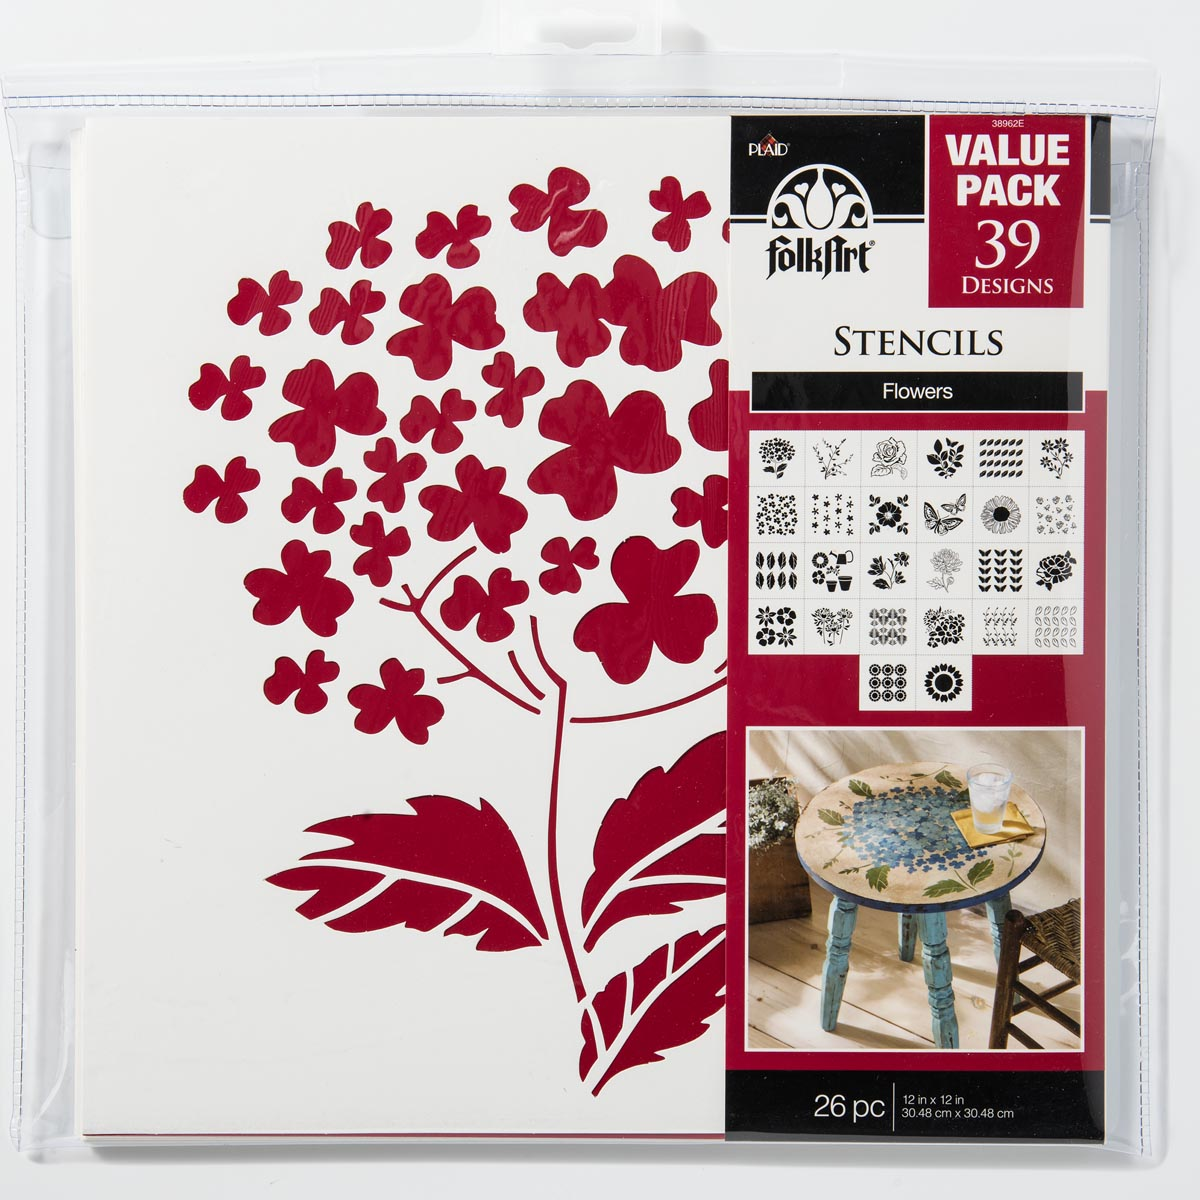 FolkArt ® Stencil Value Packs - Flowers, 12